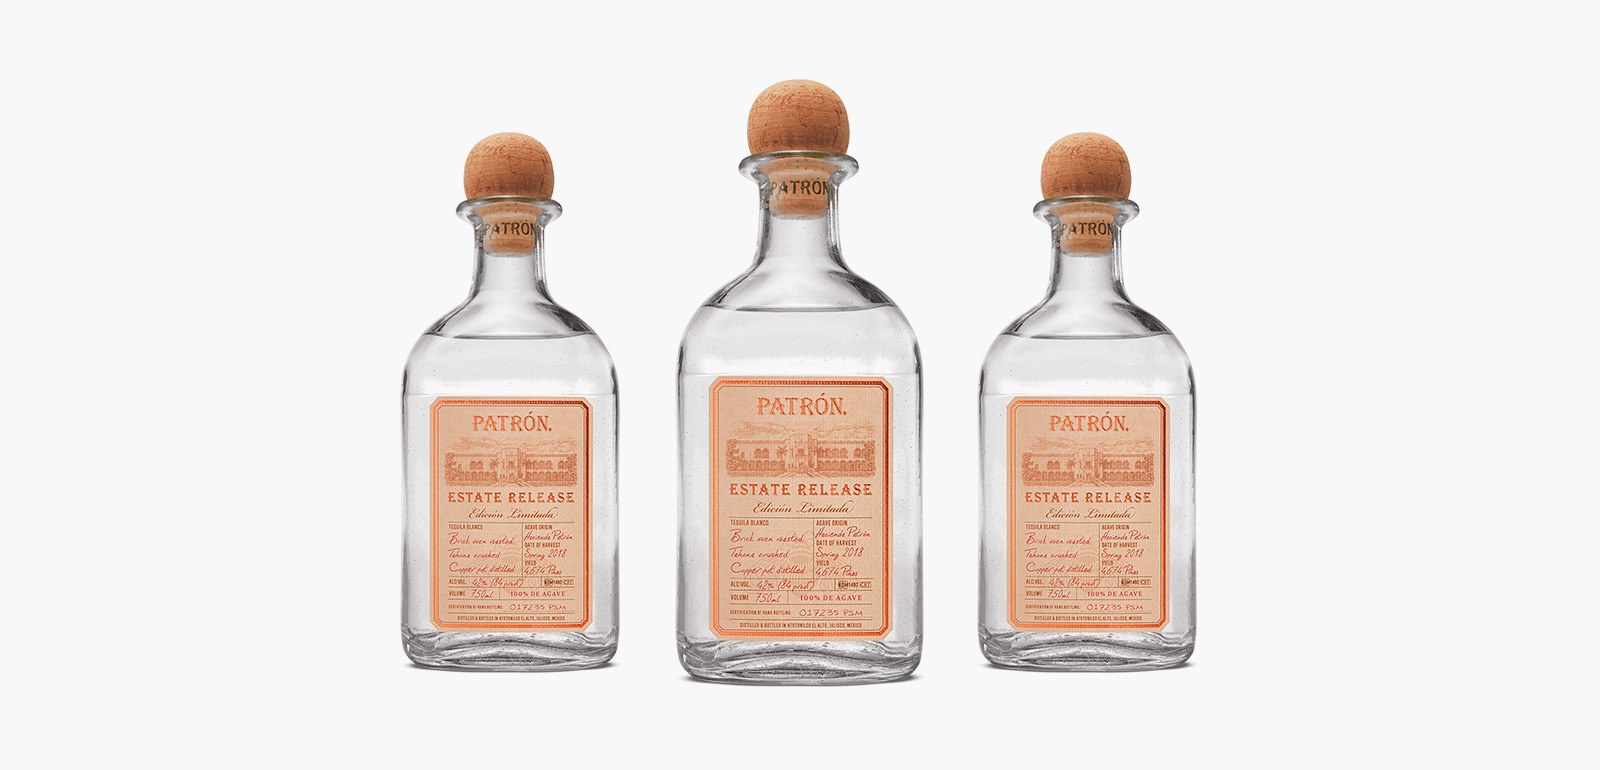 Patrón Estate Release Limited Edition Tequila